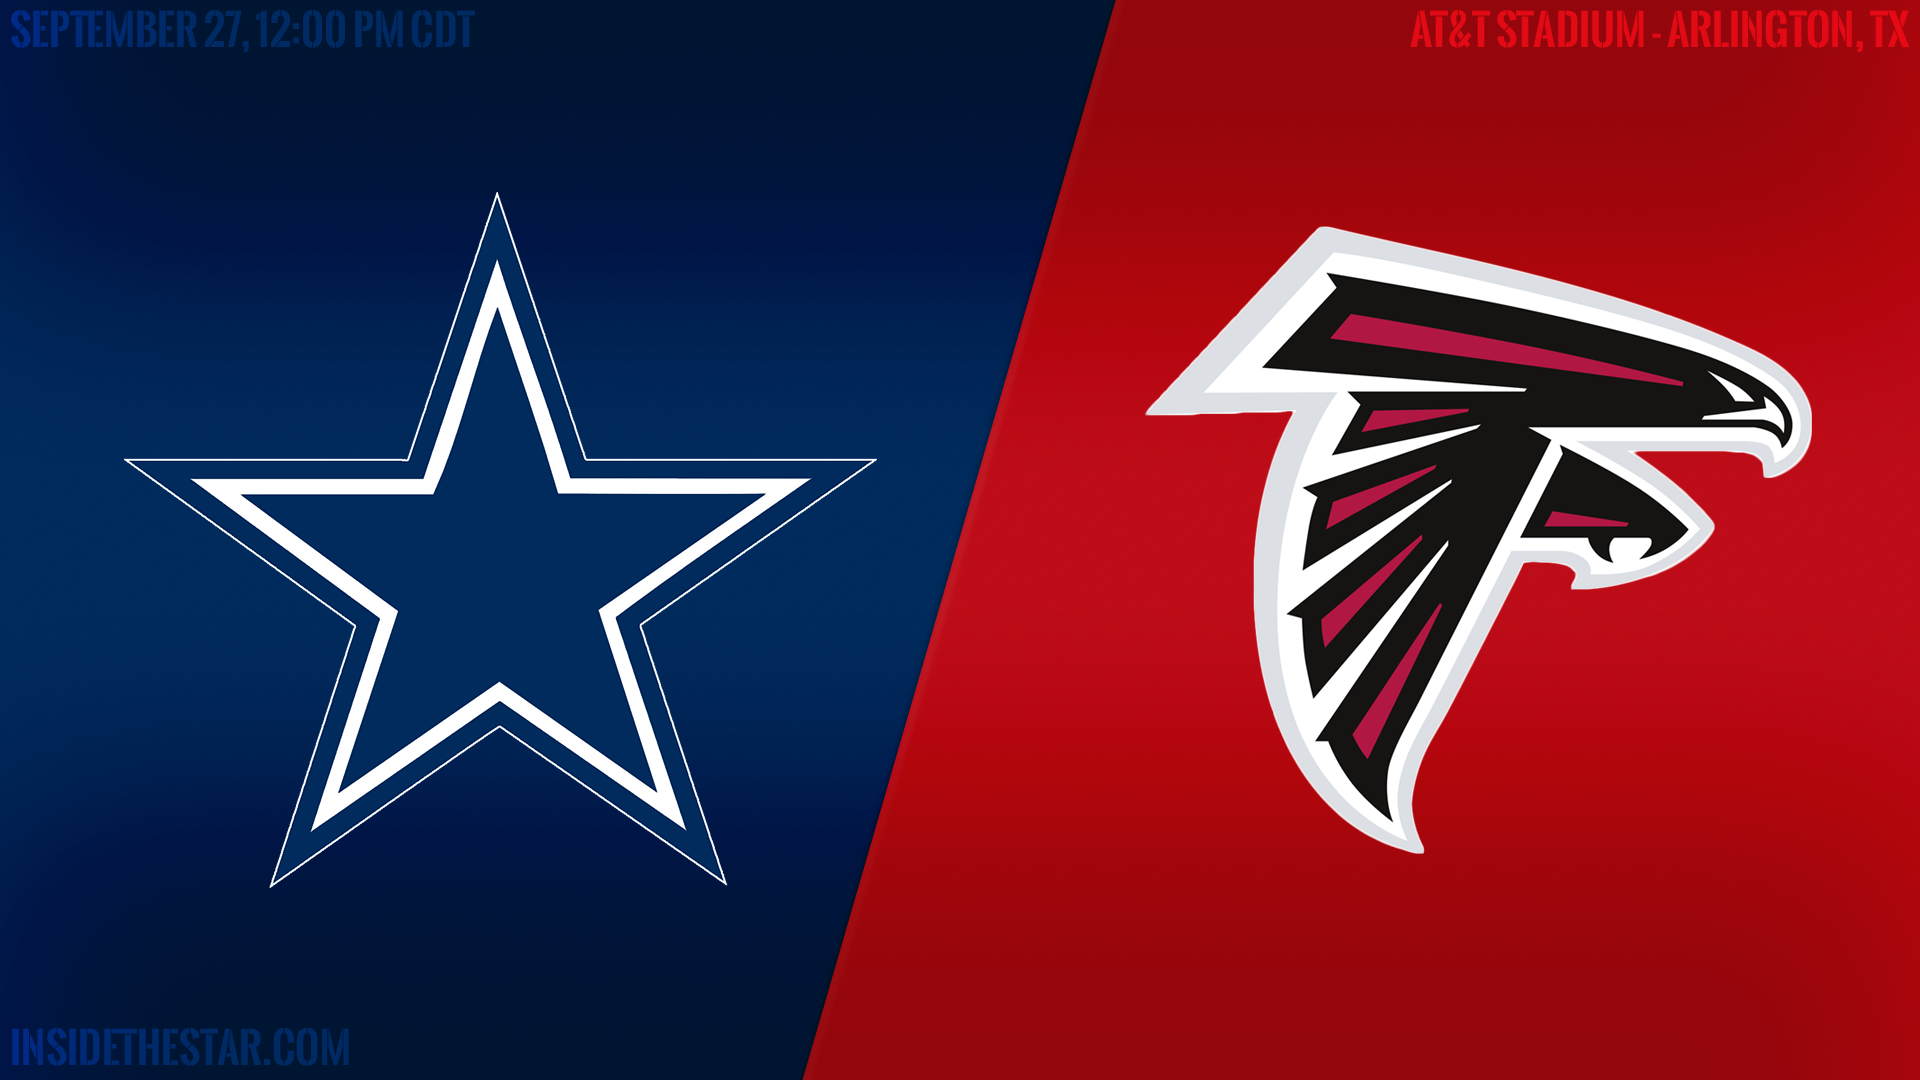 Cowboys Blog - #SmoothView Pregame Report: Dallas Cowboys vs Atlanta Falcons